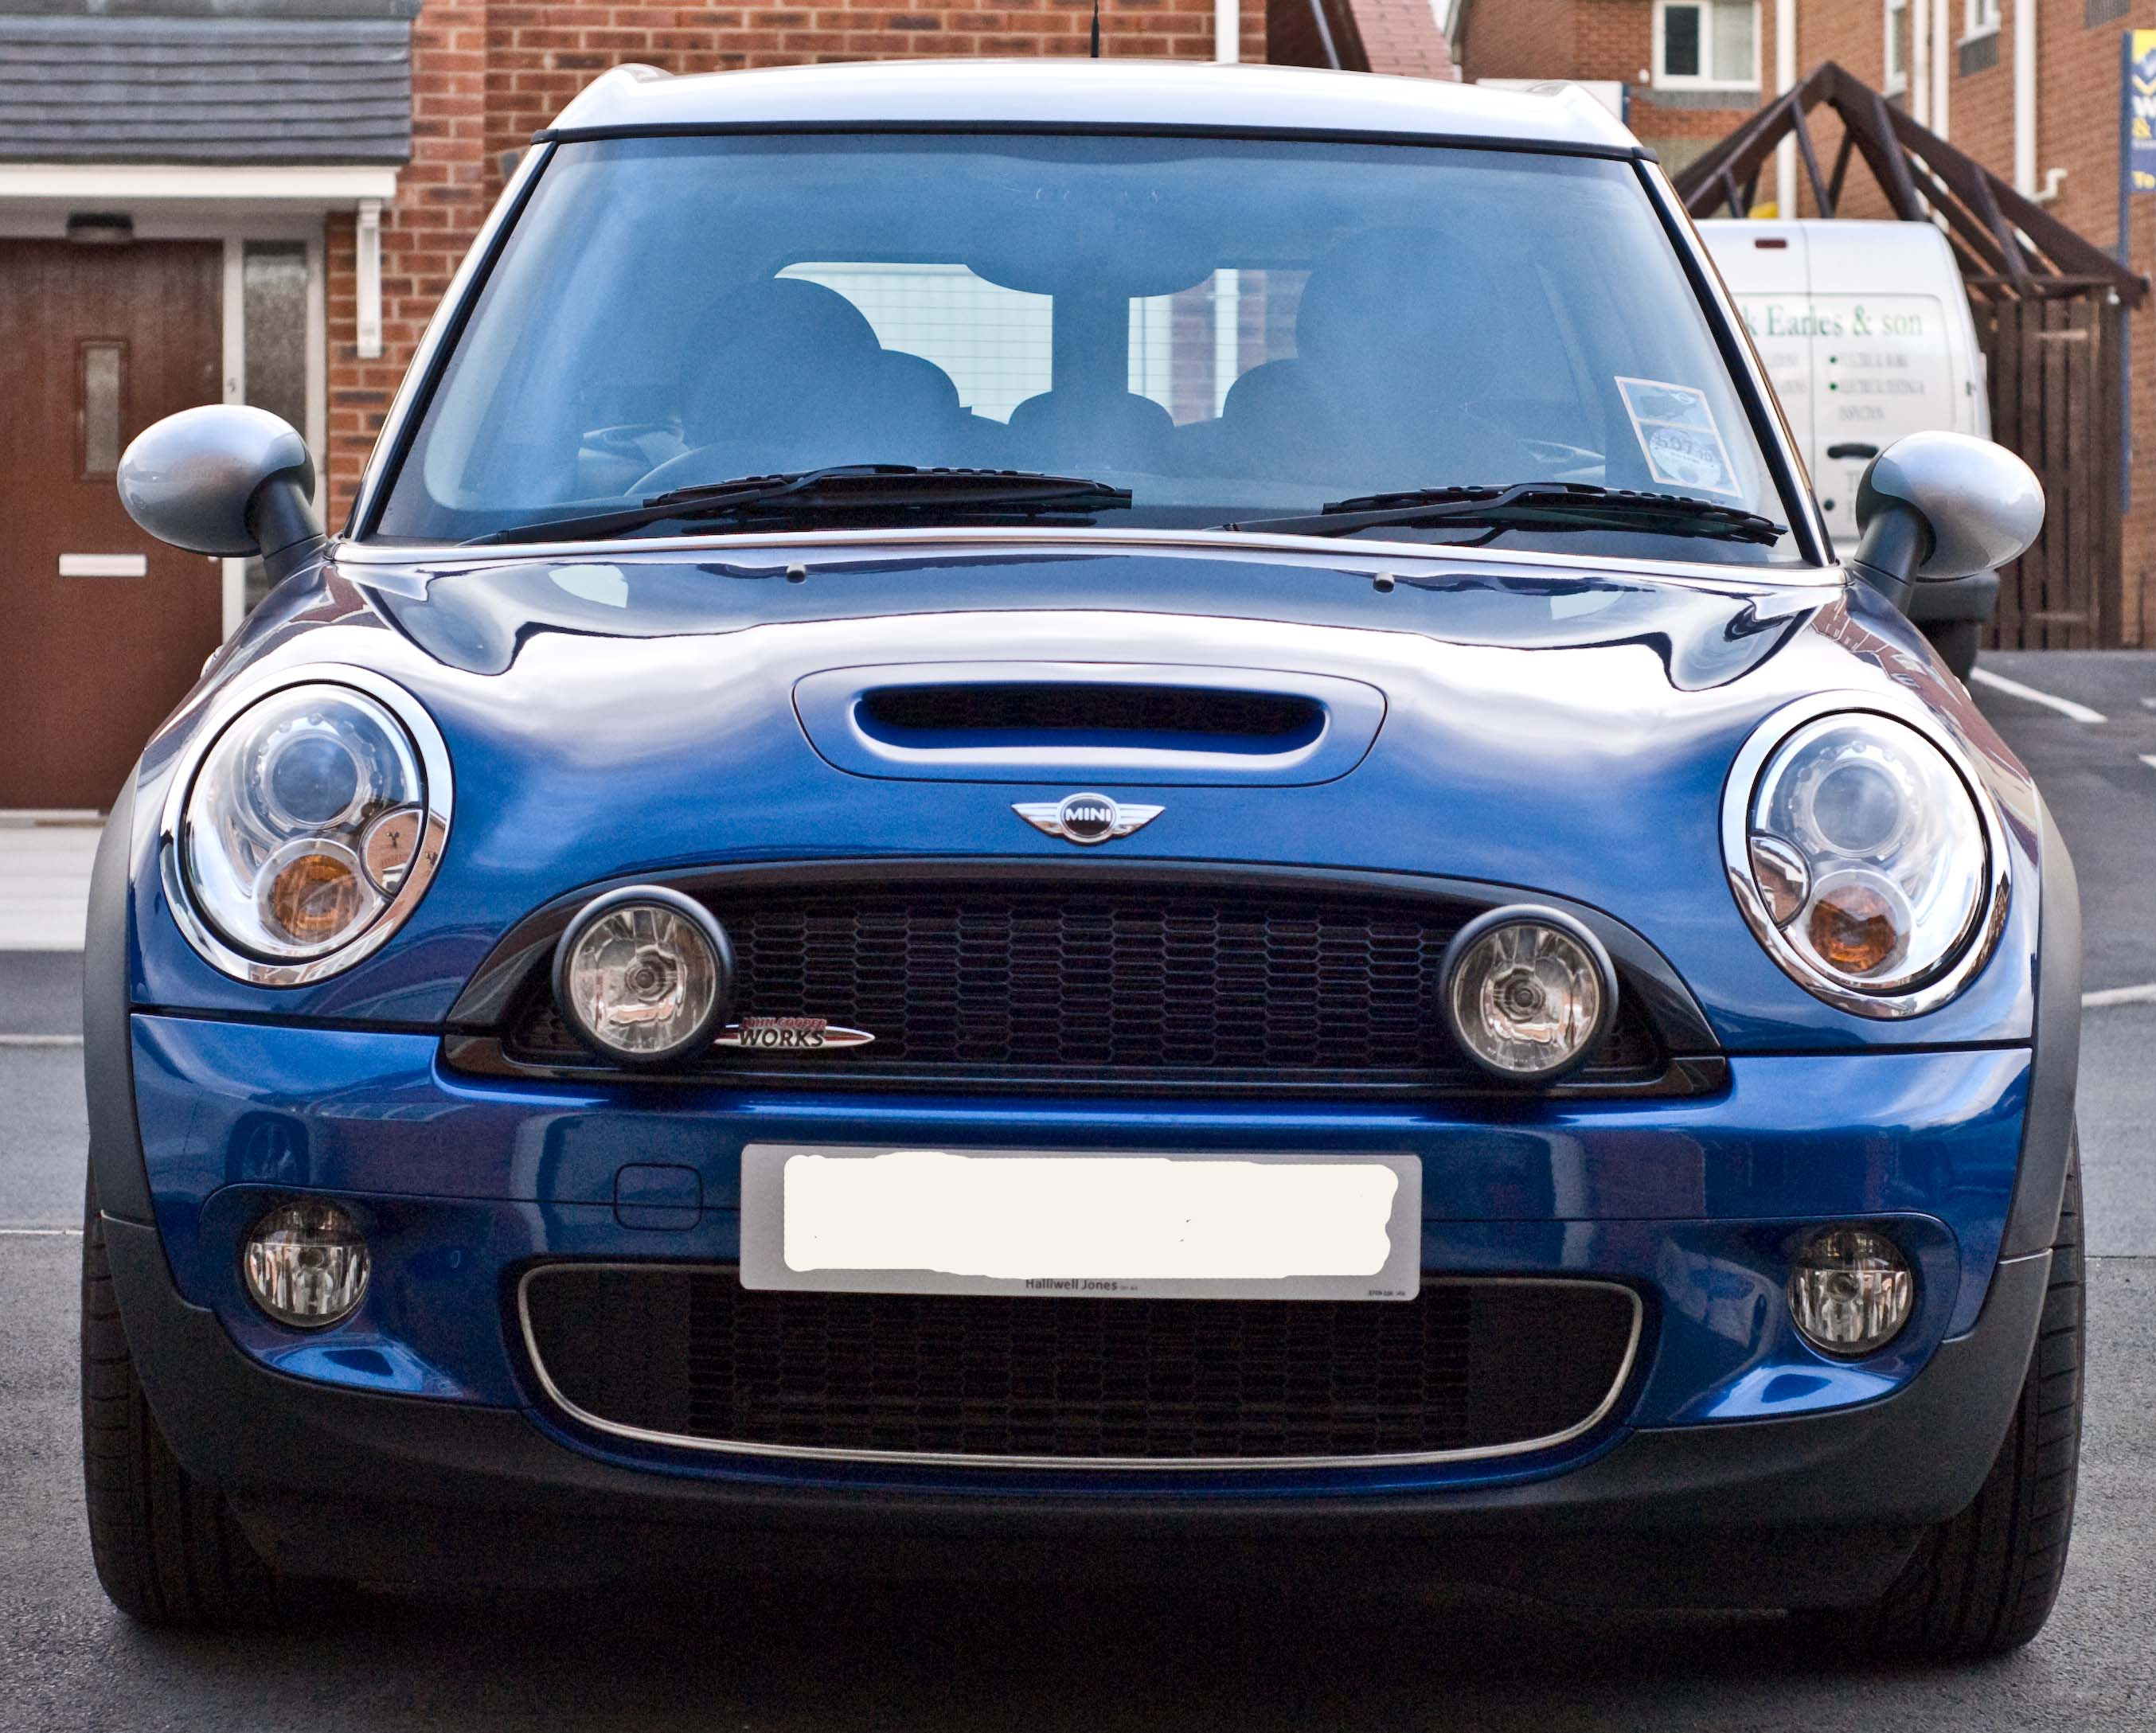 Mini Clubman Cooper S JCW DSC_1229 copy | Flickr - Photo Sharing!